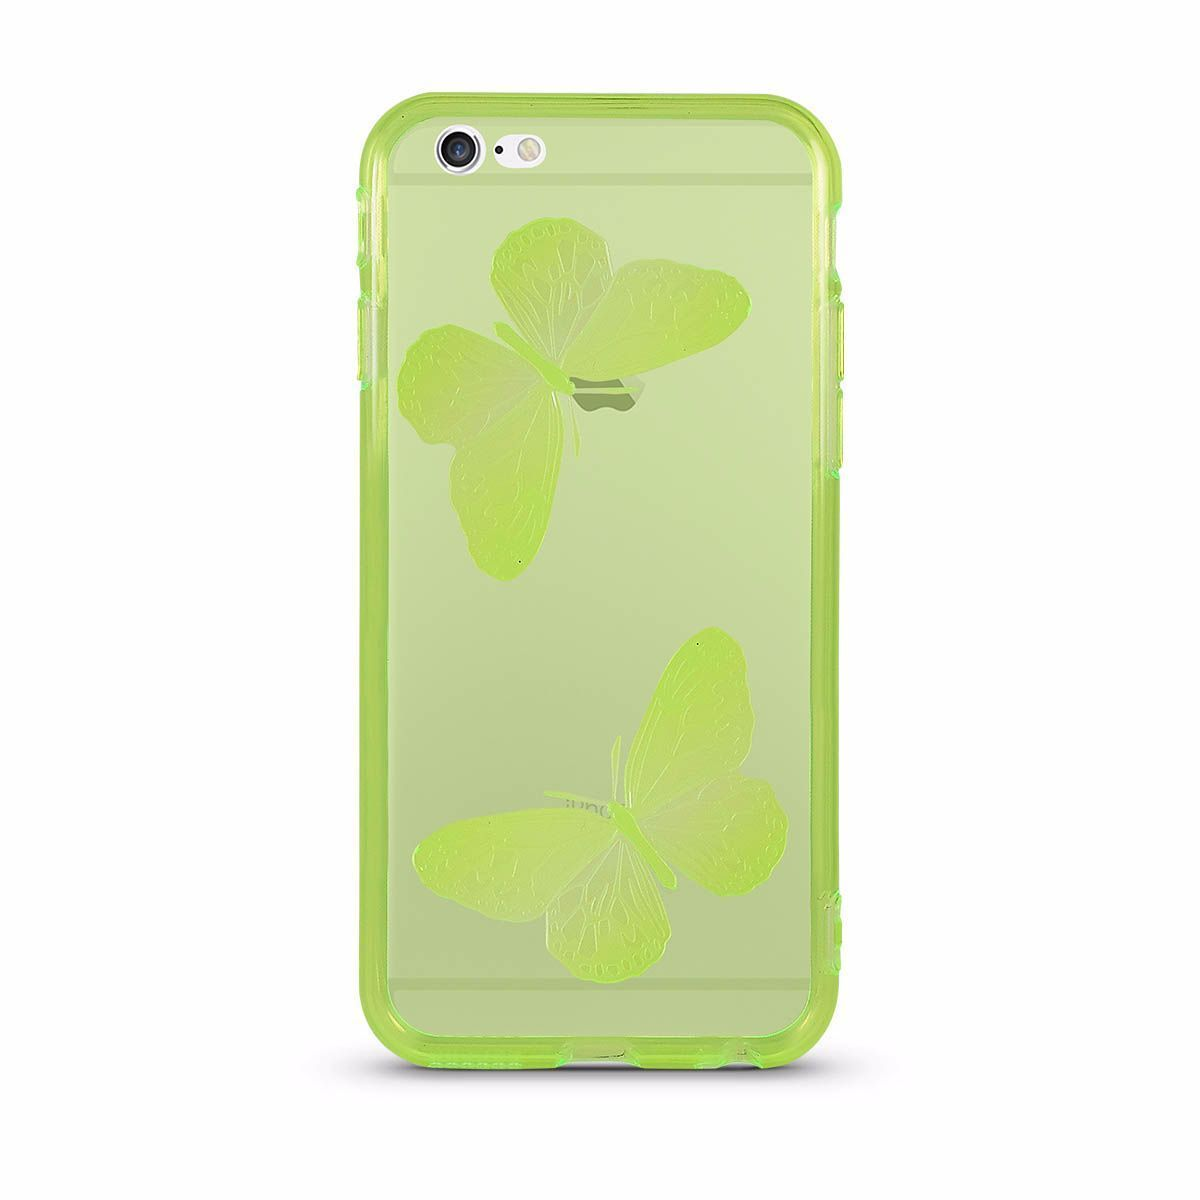 Colormot Case for iPhone 6P - Green